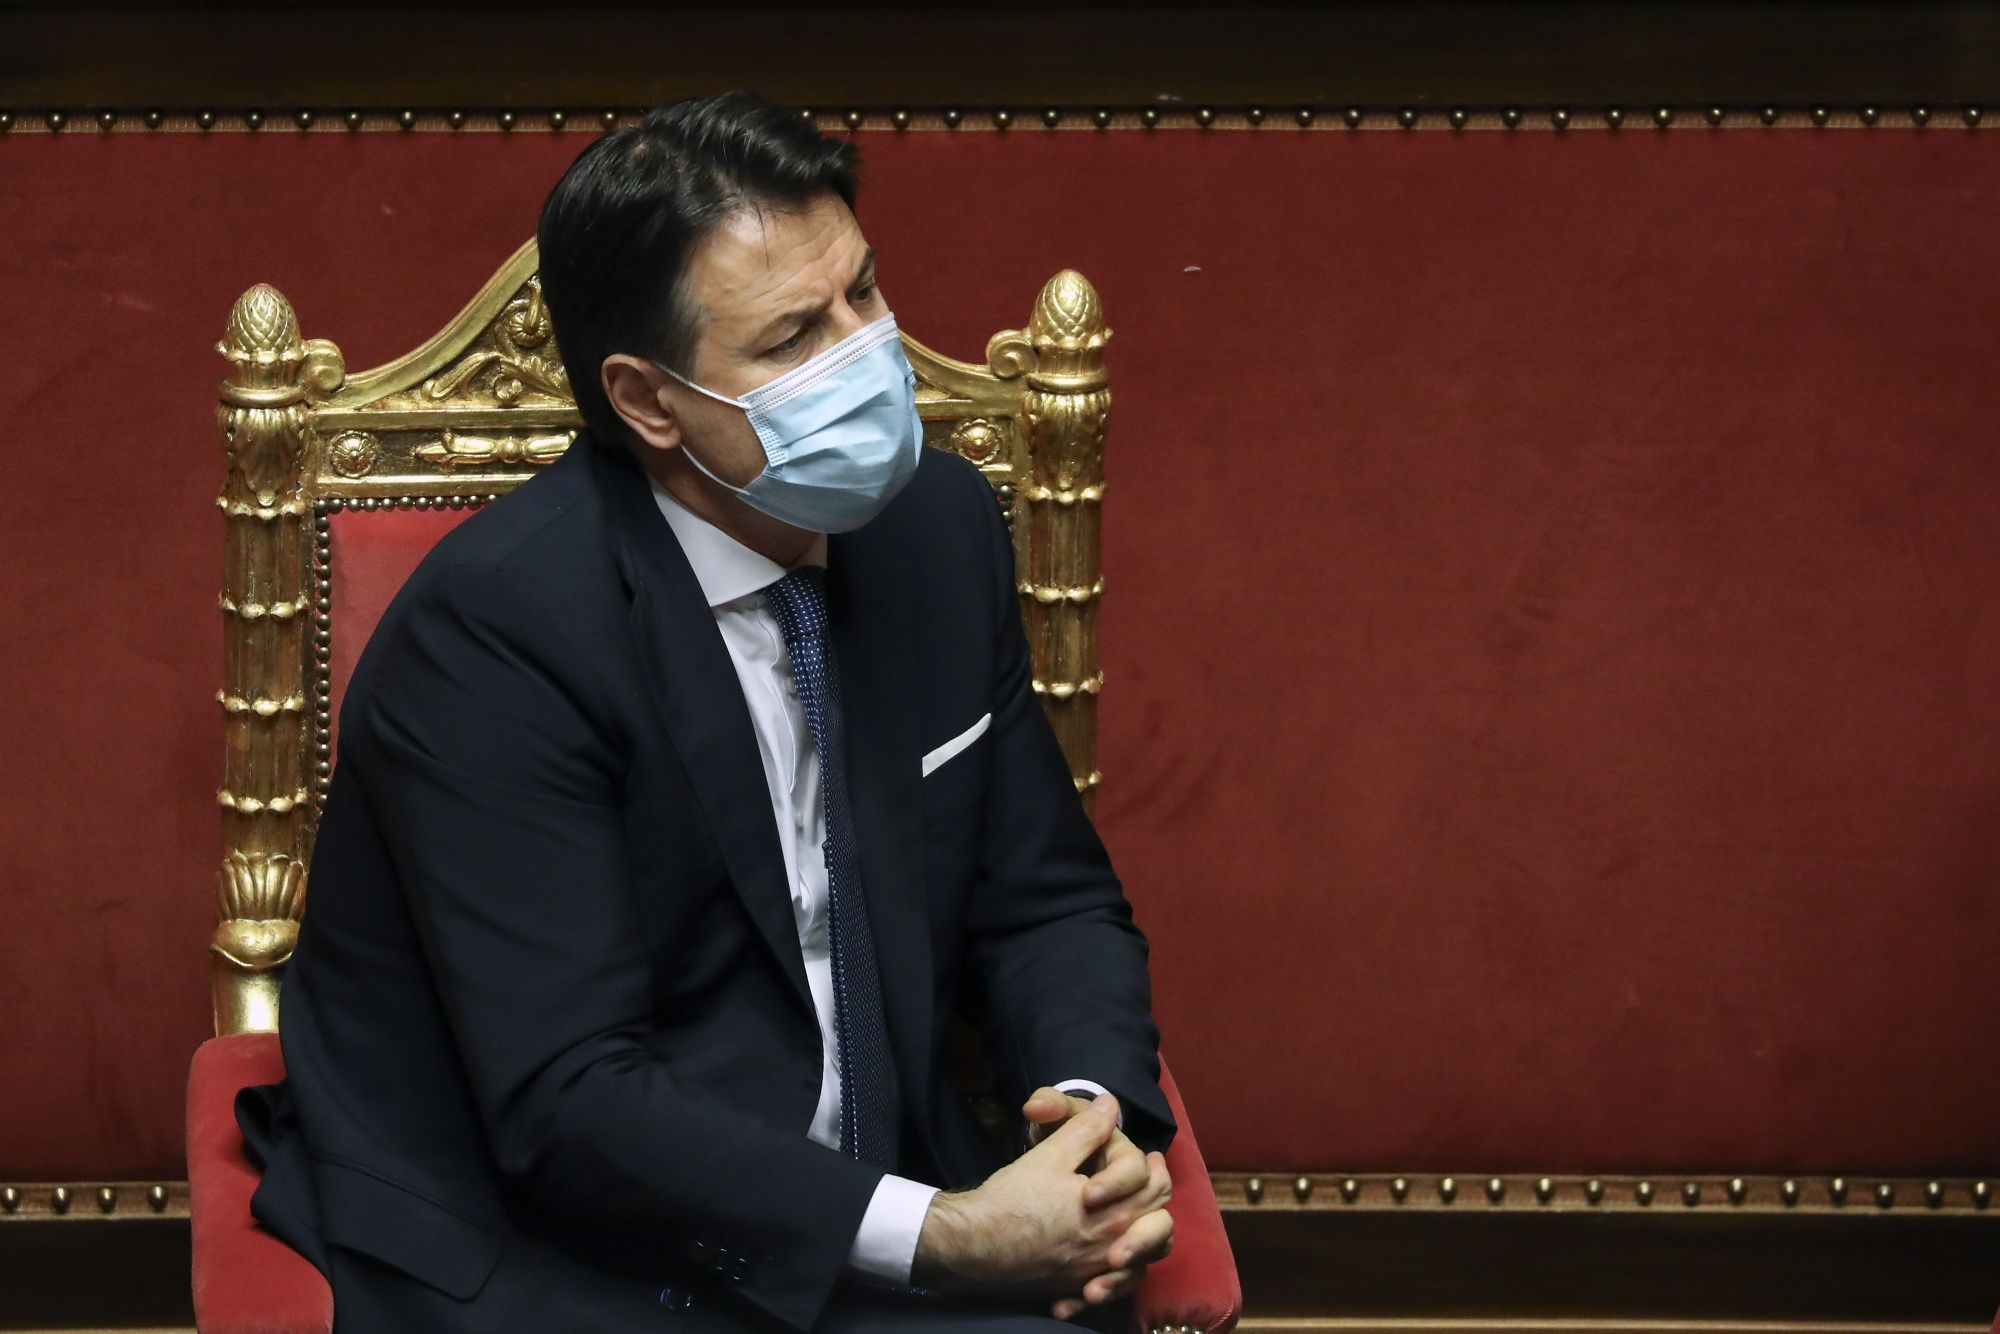 Giuseppe Conte, Italy's prime minister, listens during a debate in the Senate in Rome, Italy, on Tuesday, Jan. 19, 2021. Prime Minister Giuseppe Conte waged a charm offensive Tuesday in the Italian Senate ahead of a vote that will decide whether his coalition can survive.